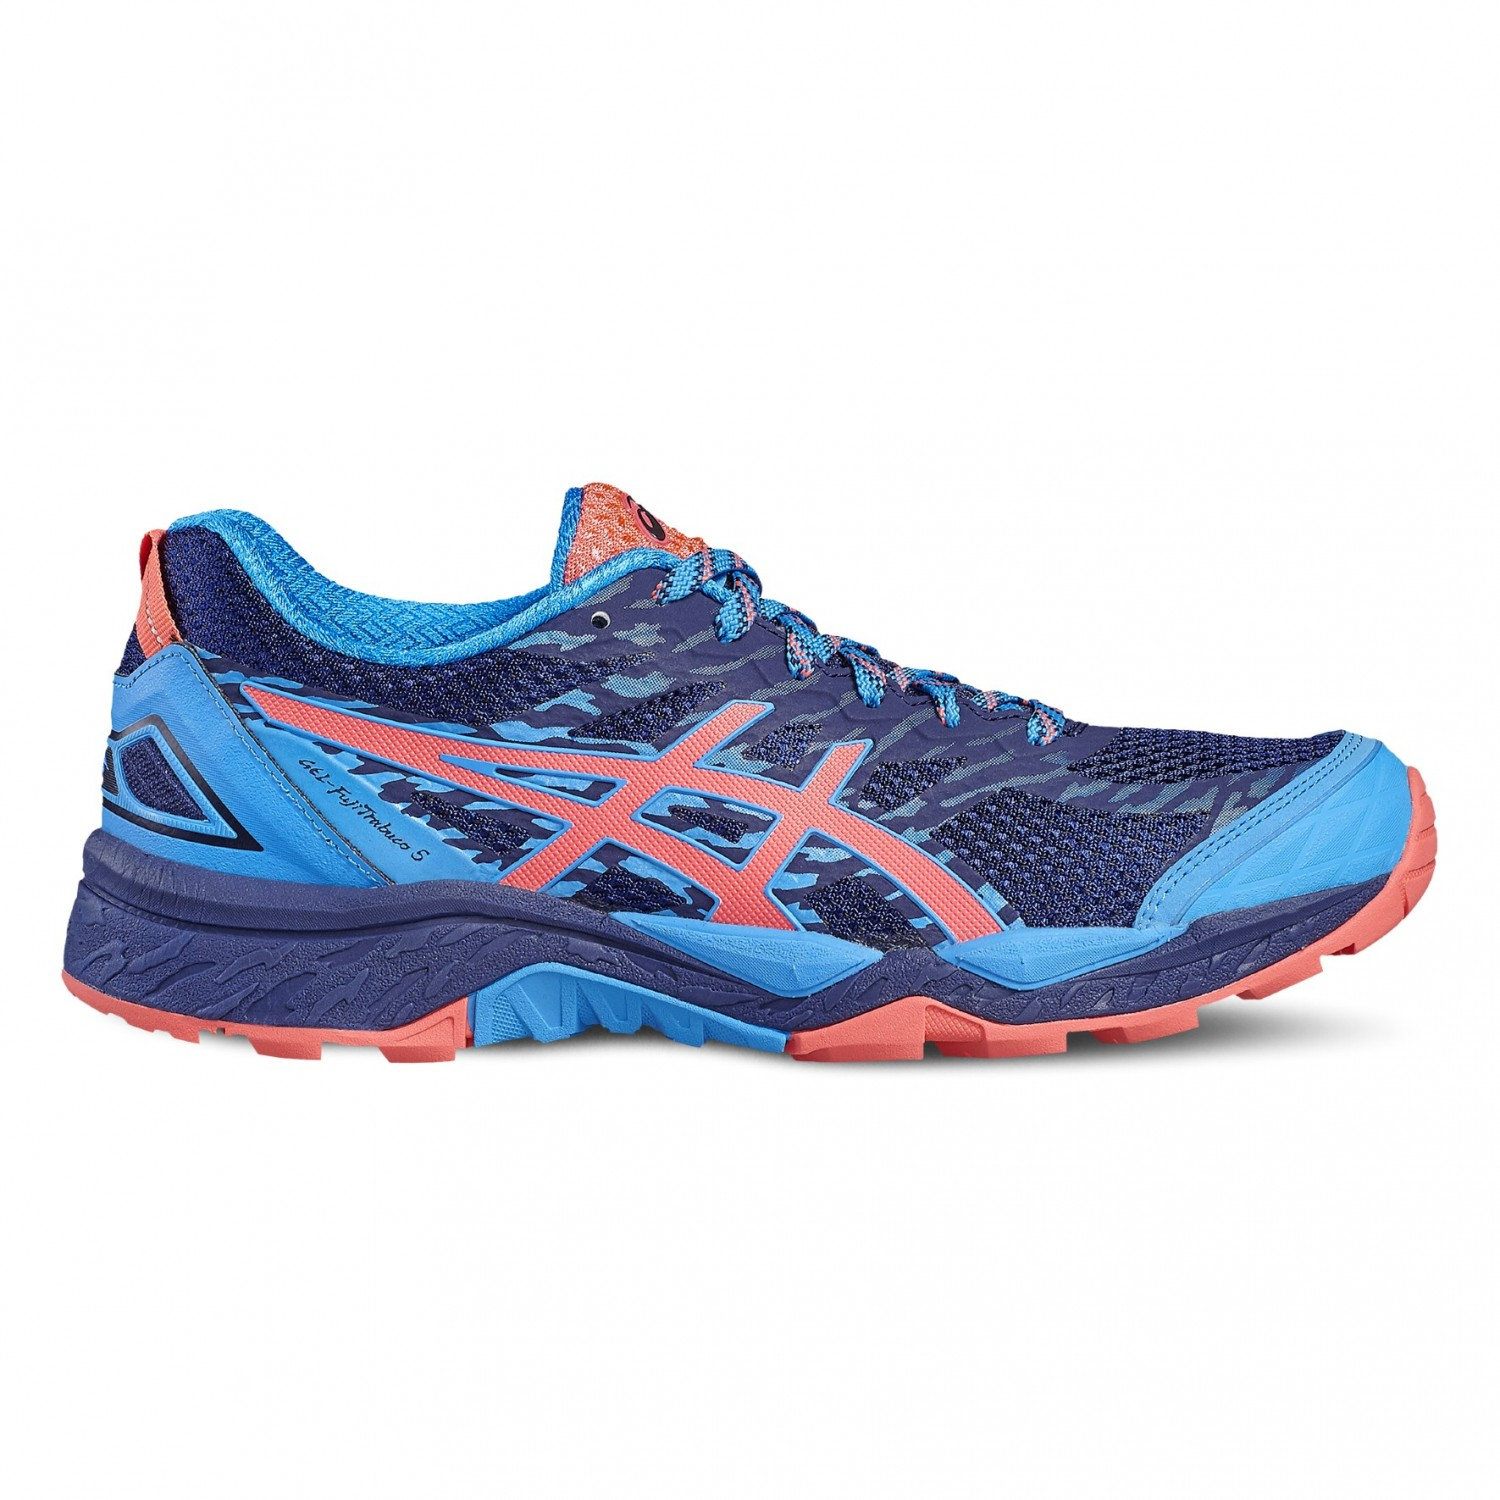 ASICS GEL FUJI outlete